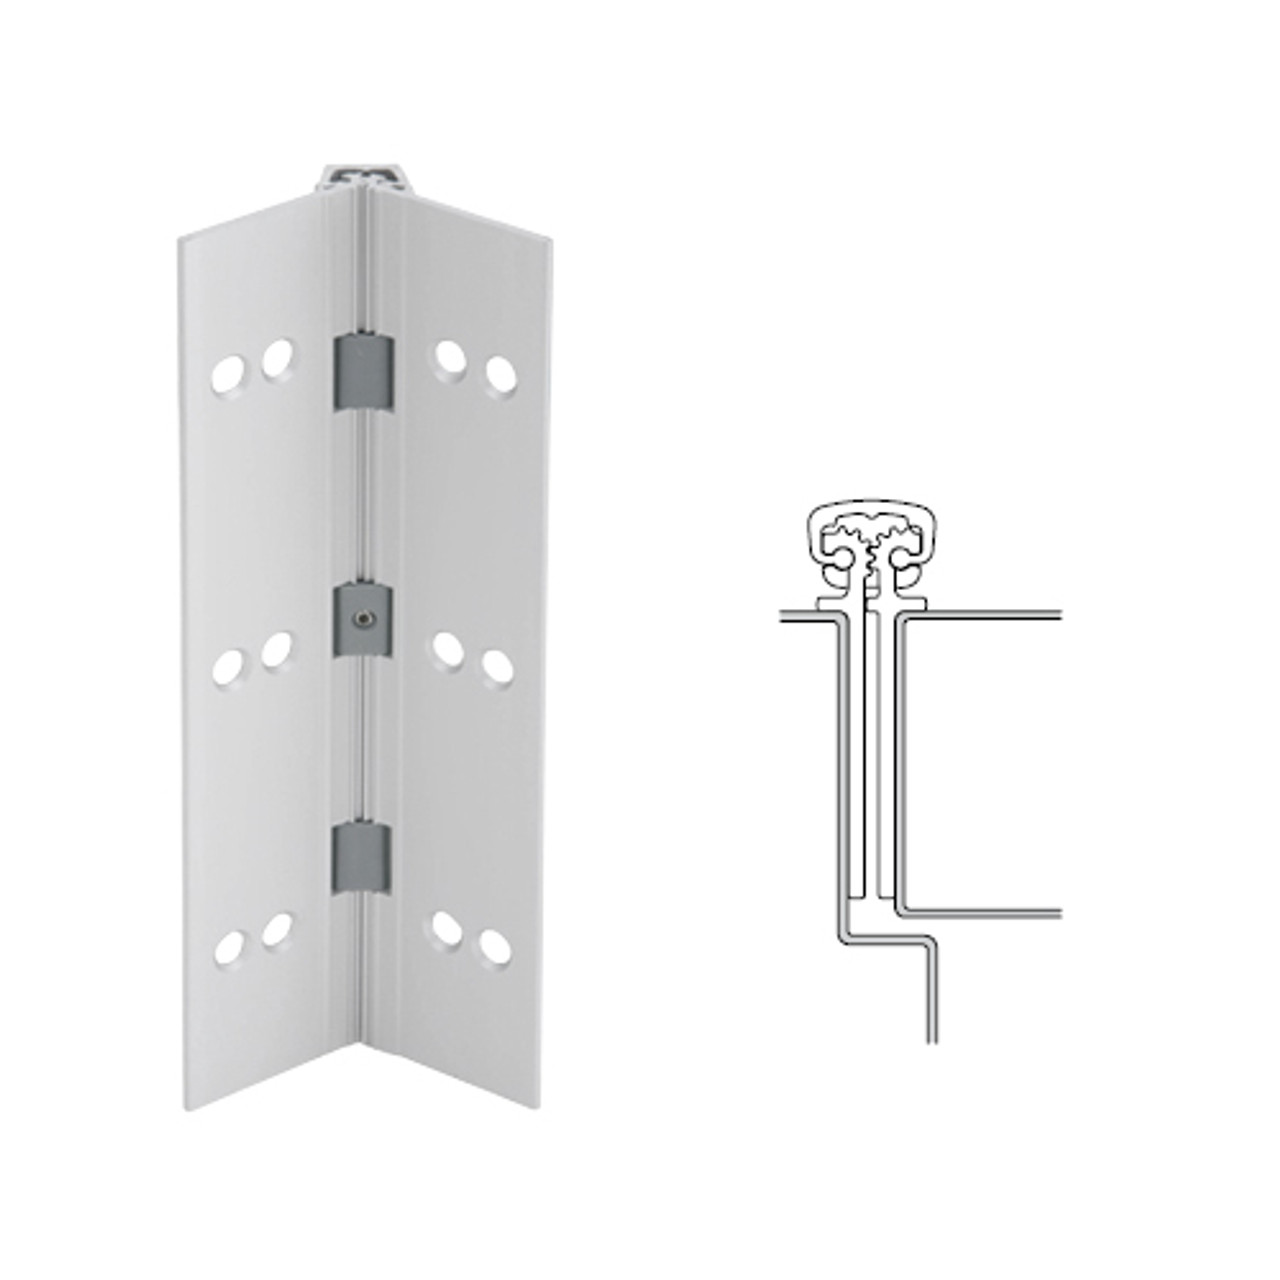 027XY-US28-95-TF IVES Full Mortise Continuous Geared Hinges with Thread Forming Screws in Satin Aluminum